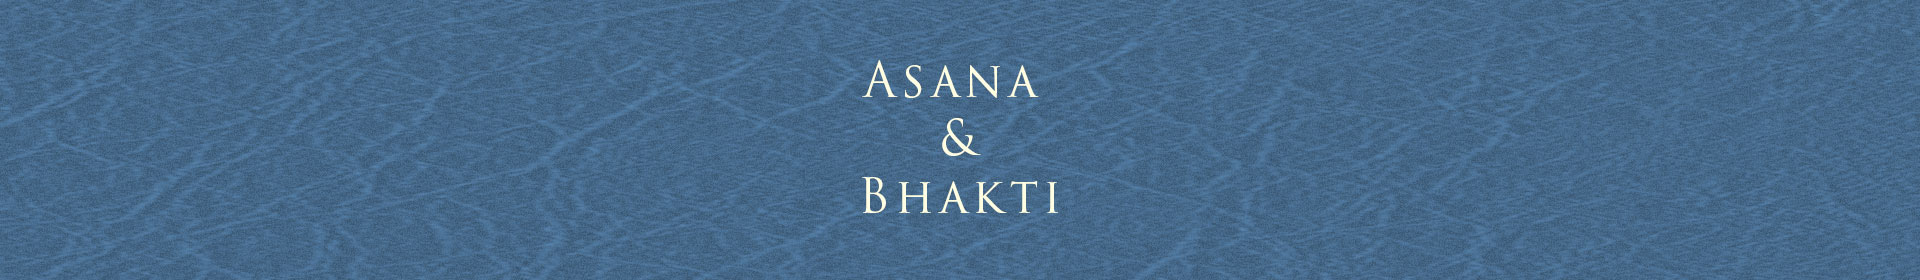 Asana and Bhakti-What does love have to do with it?